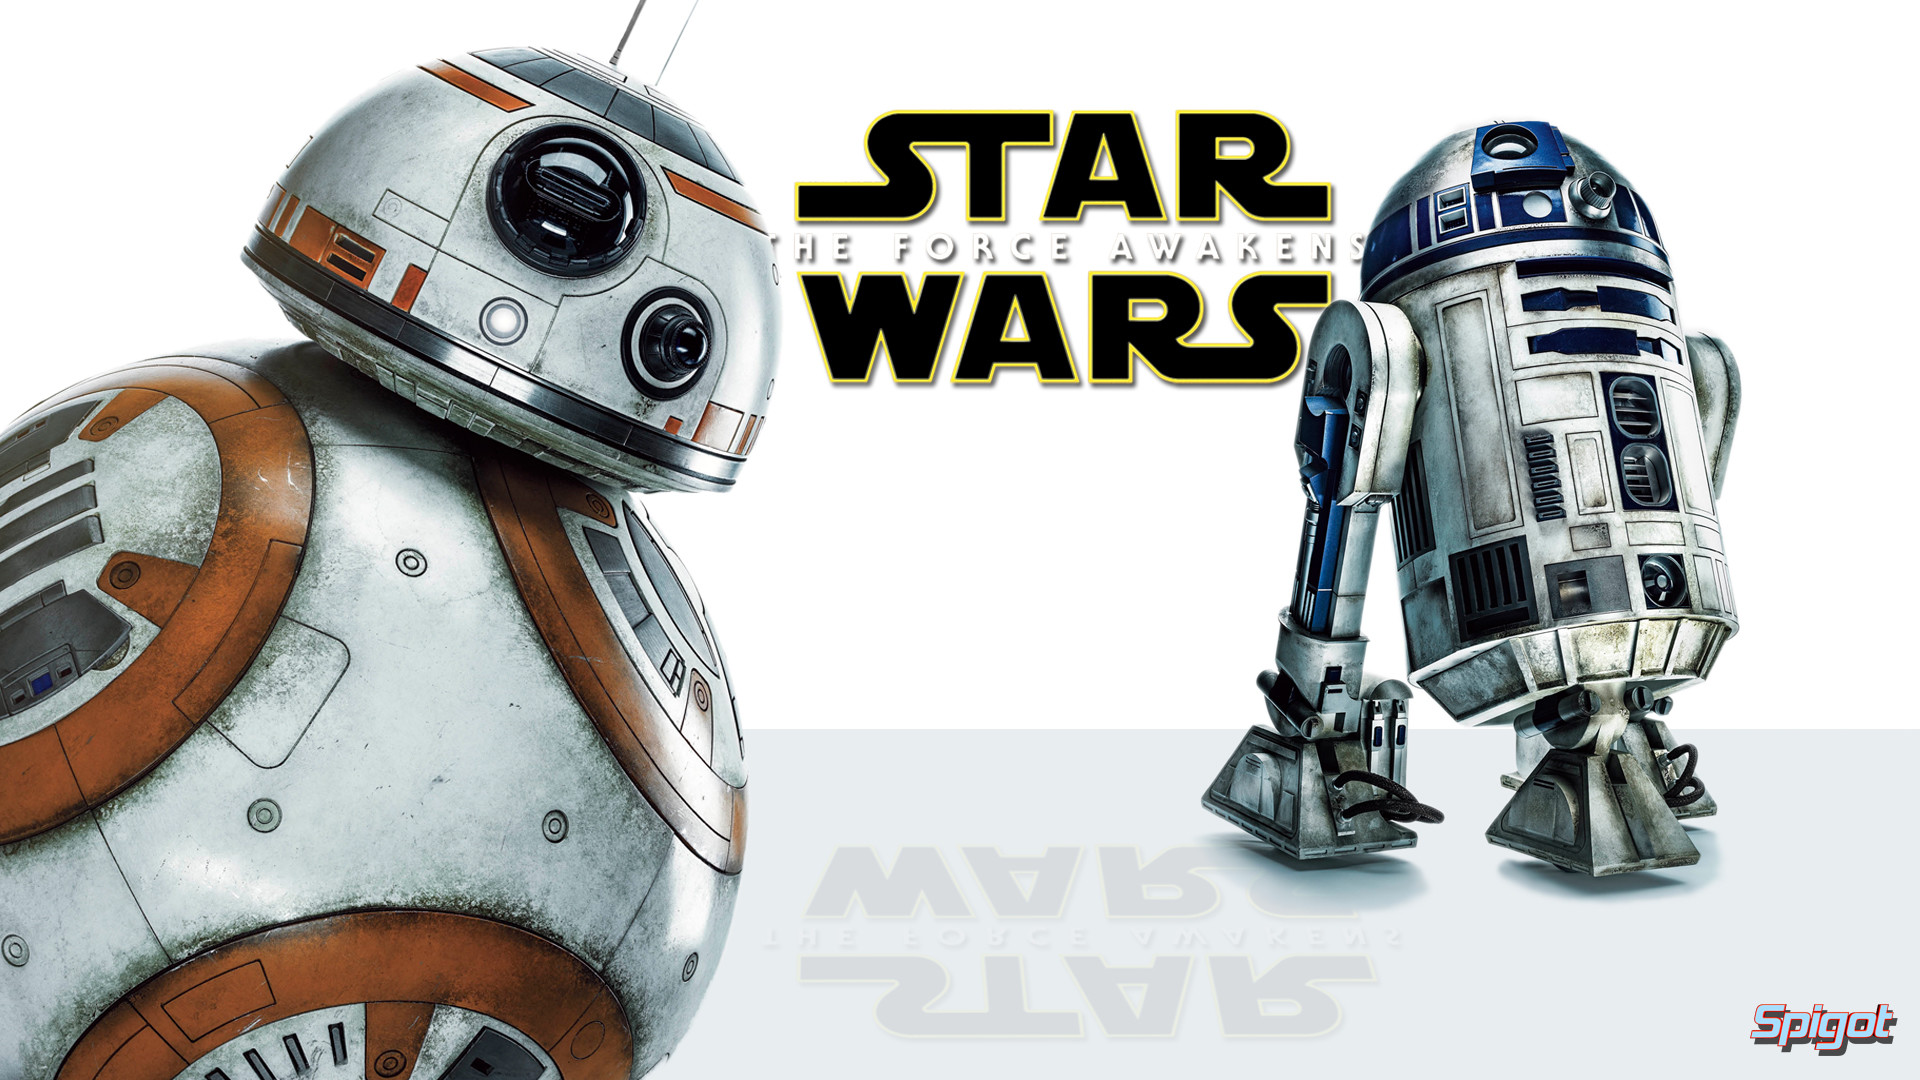 74 Bb8 R2D2 Wallpapers on WallpaperPlay 1920x1080